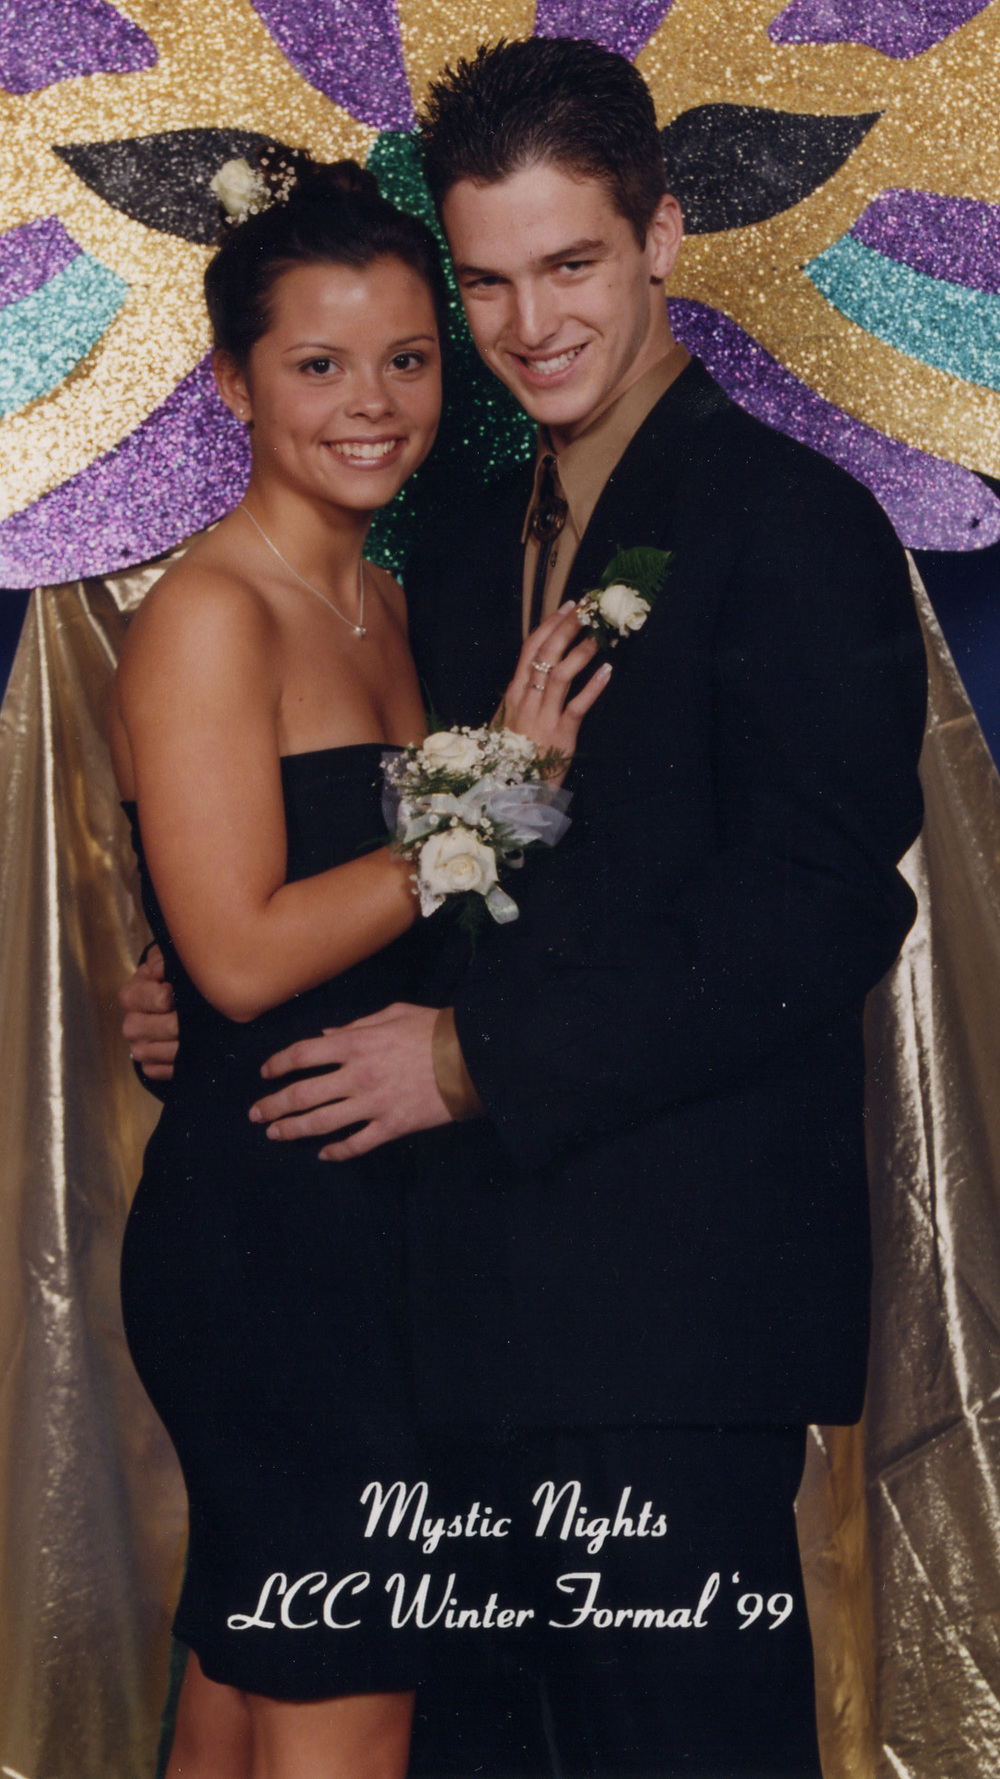 287 Nick Winter Formal 1999.jpg